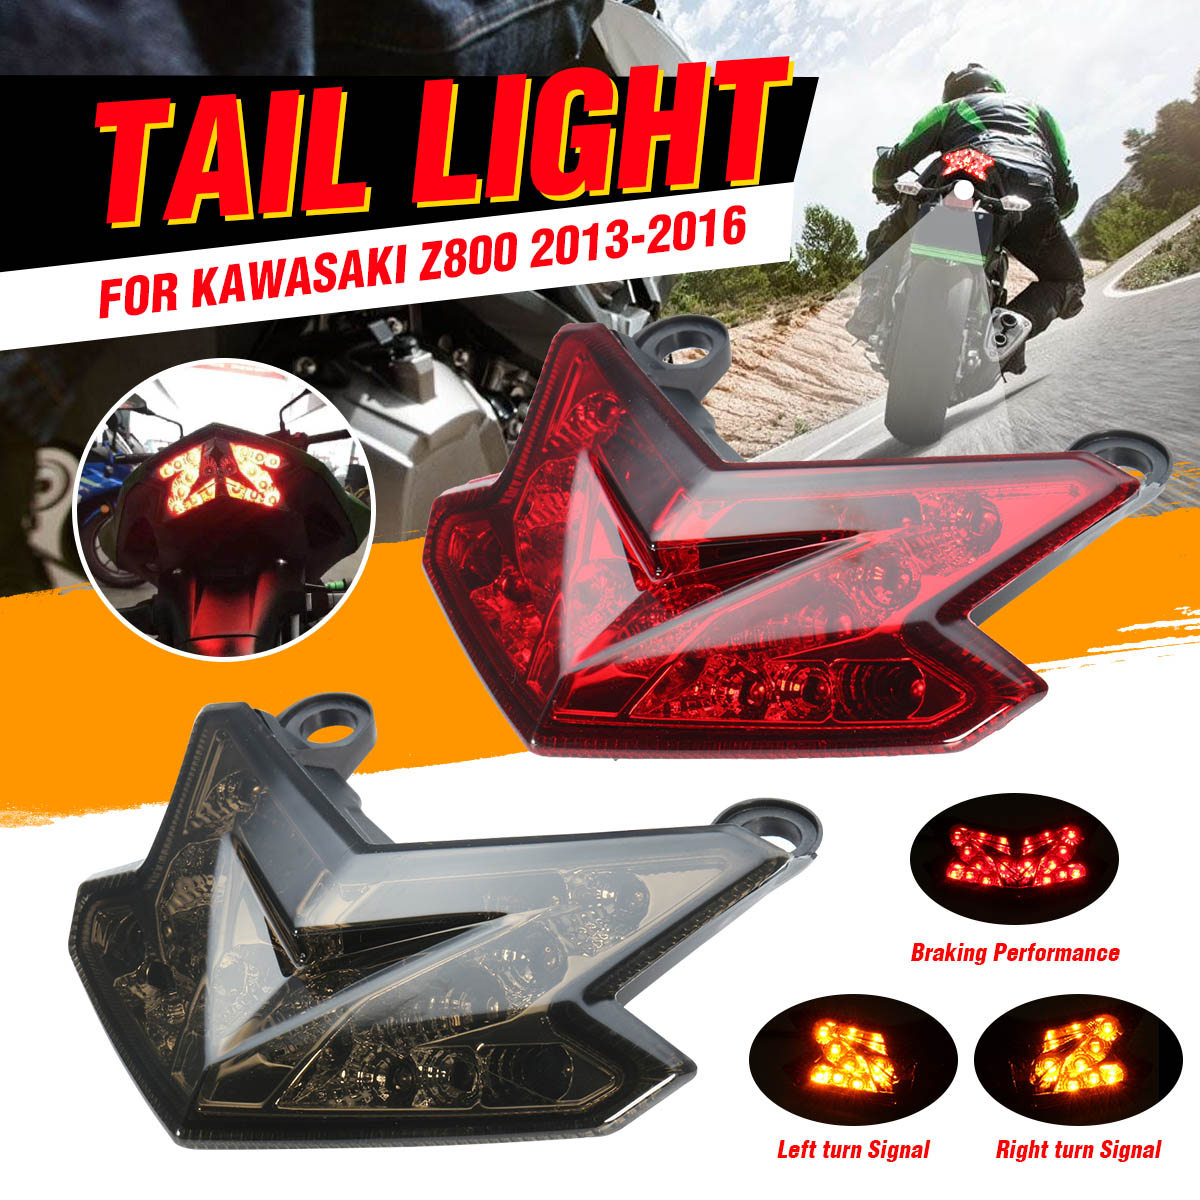 12V Rear Motorcycle Tail Light LED Brake Lamp Turn Signal License Integrated Light For Kawasaki Z800 2013 2014 2015 2016 ZX-6R